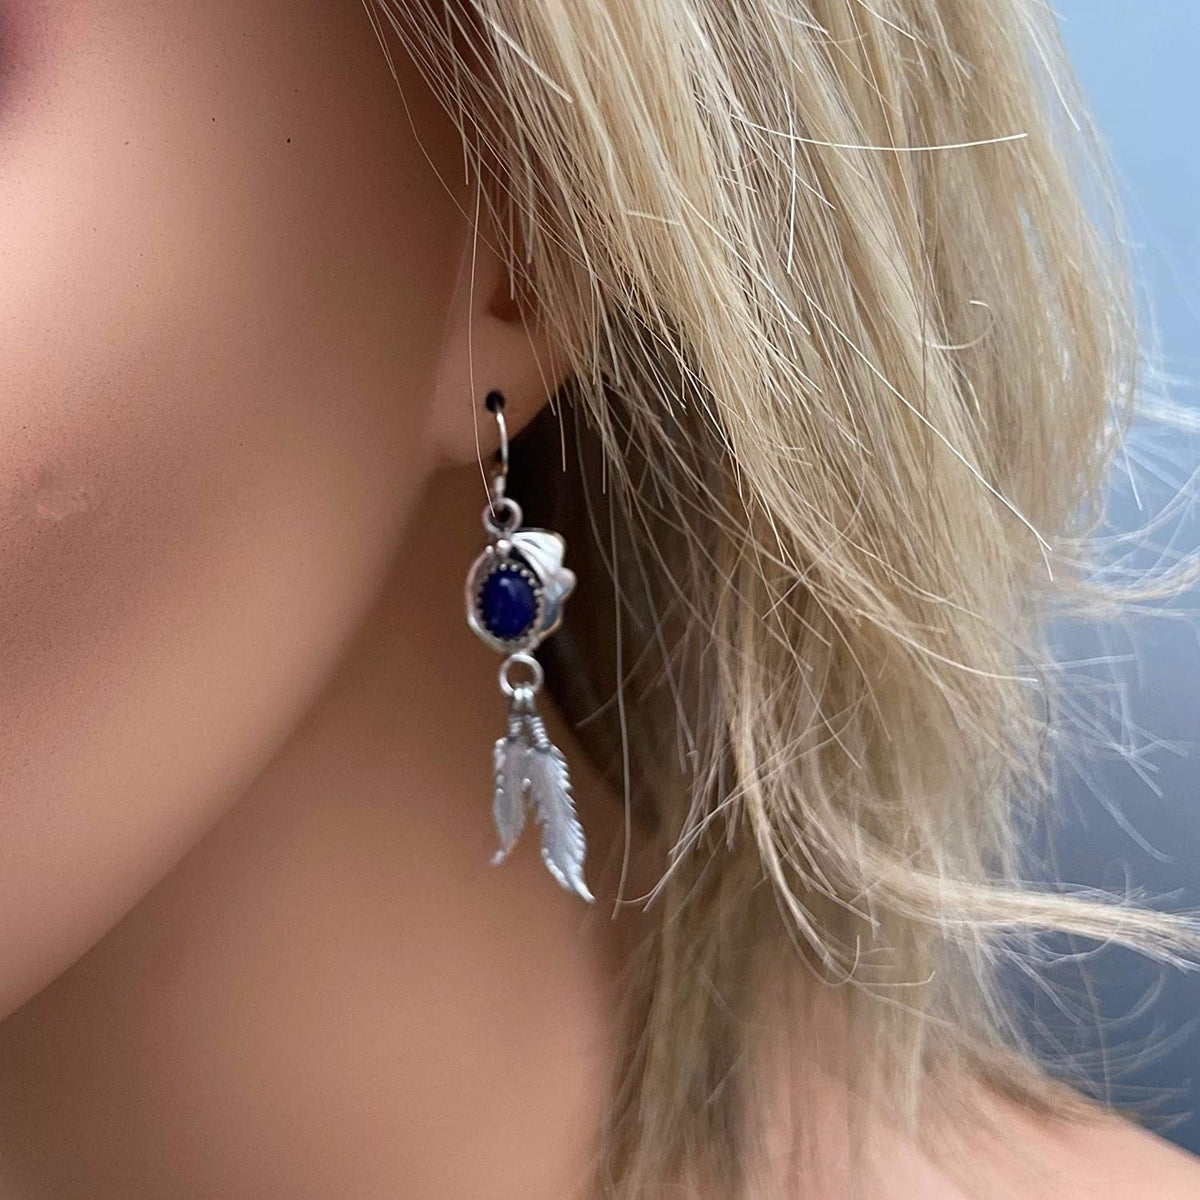 Genuine Lapis Lazuli Earrings, 925 Sterling Silver, Native American USA Handmade, Nickle Free, Navy Blue French Hook